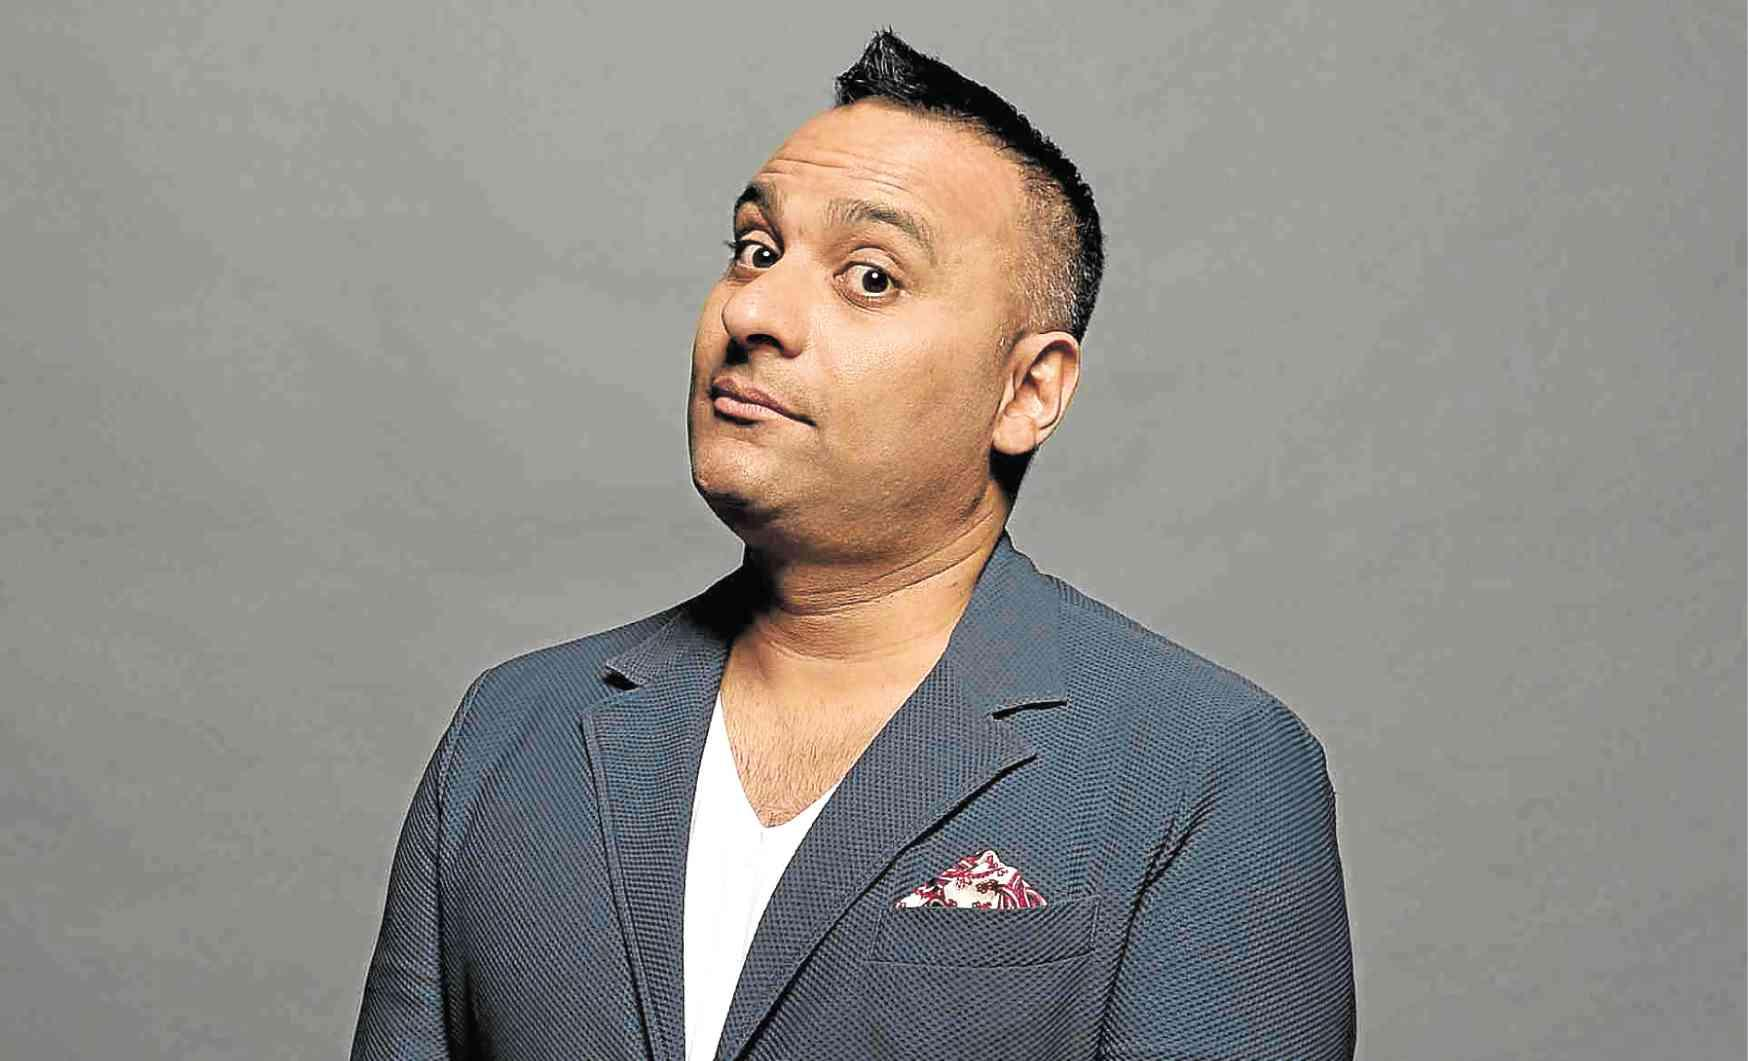 Shimmy Shimmy Ya with Russell Peters, Brendan Schaub, +more!